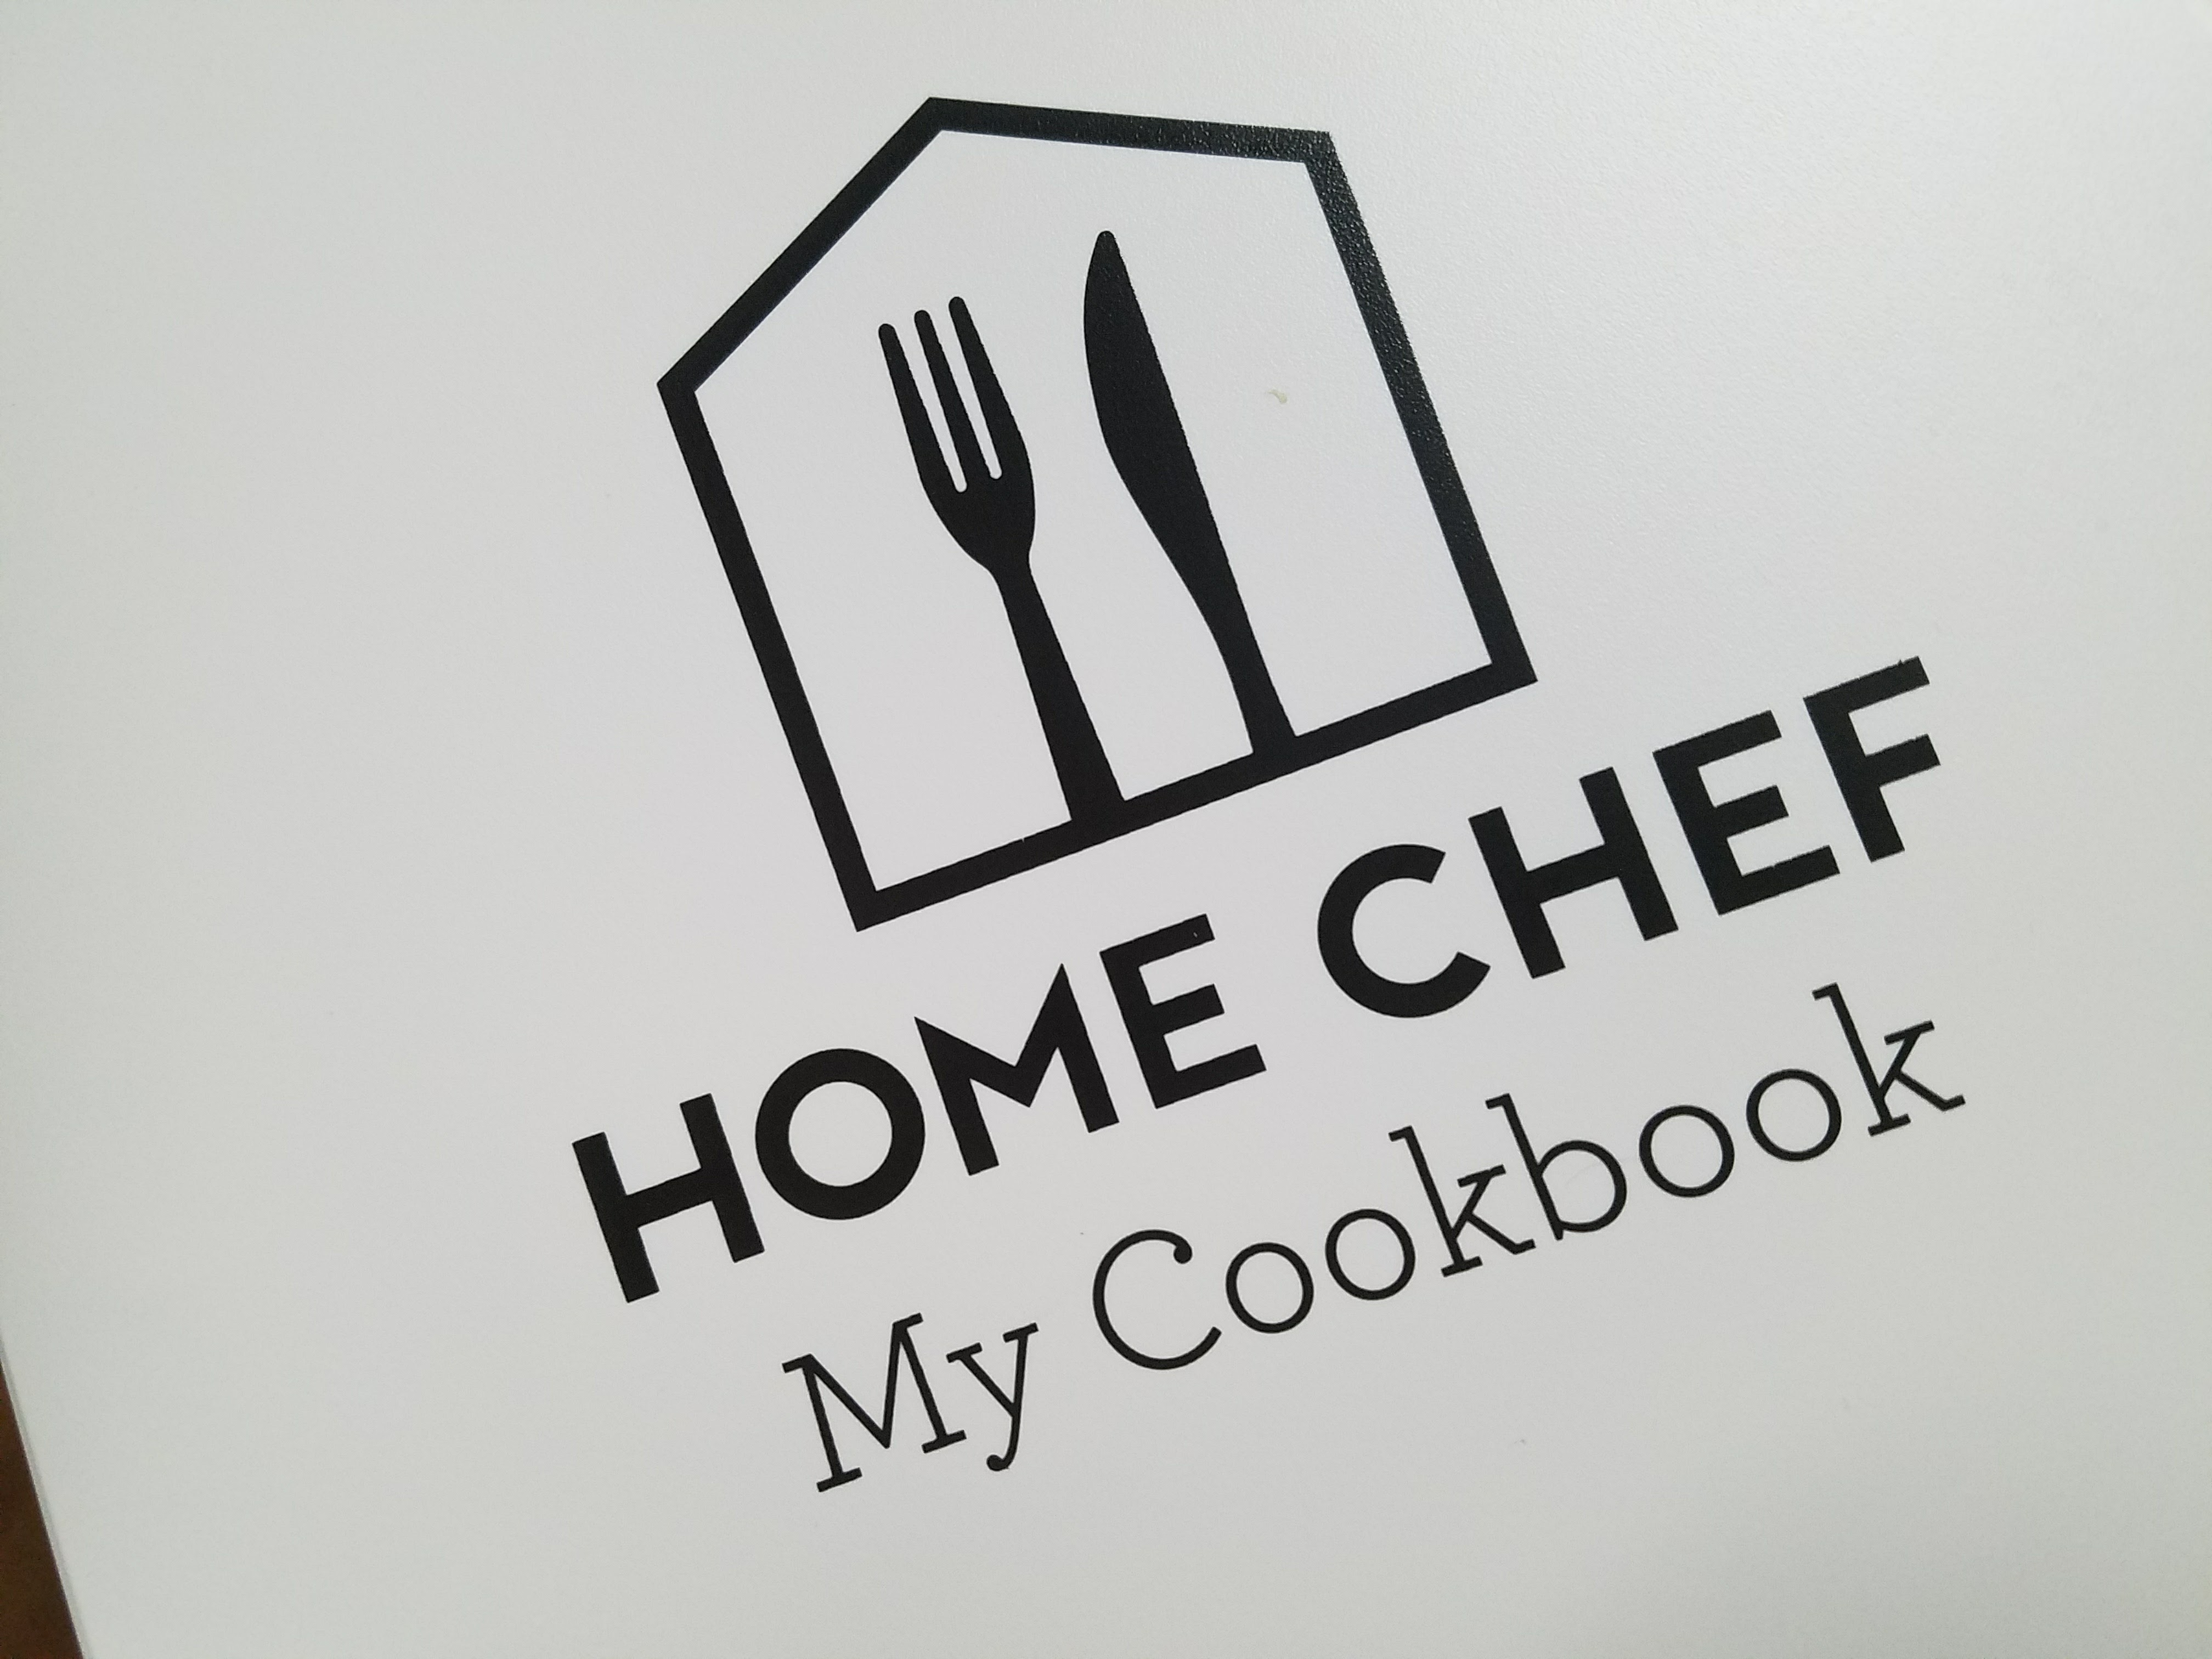 Home Chef Cook book